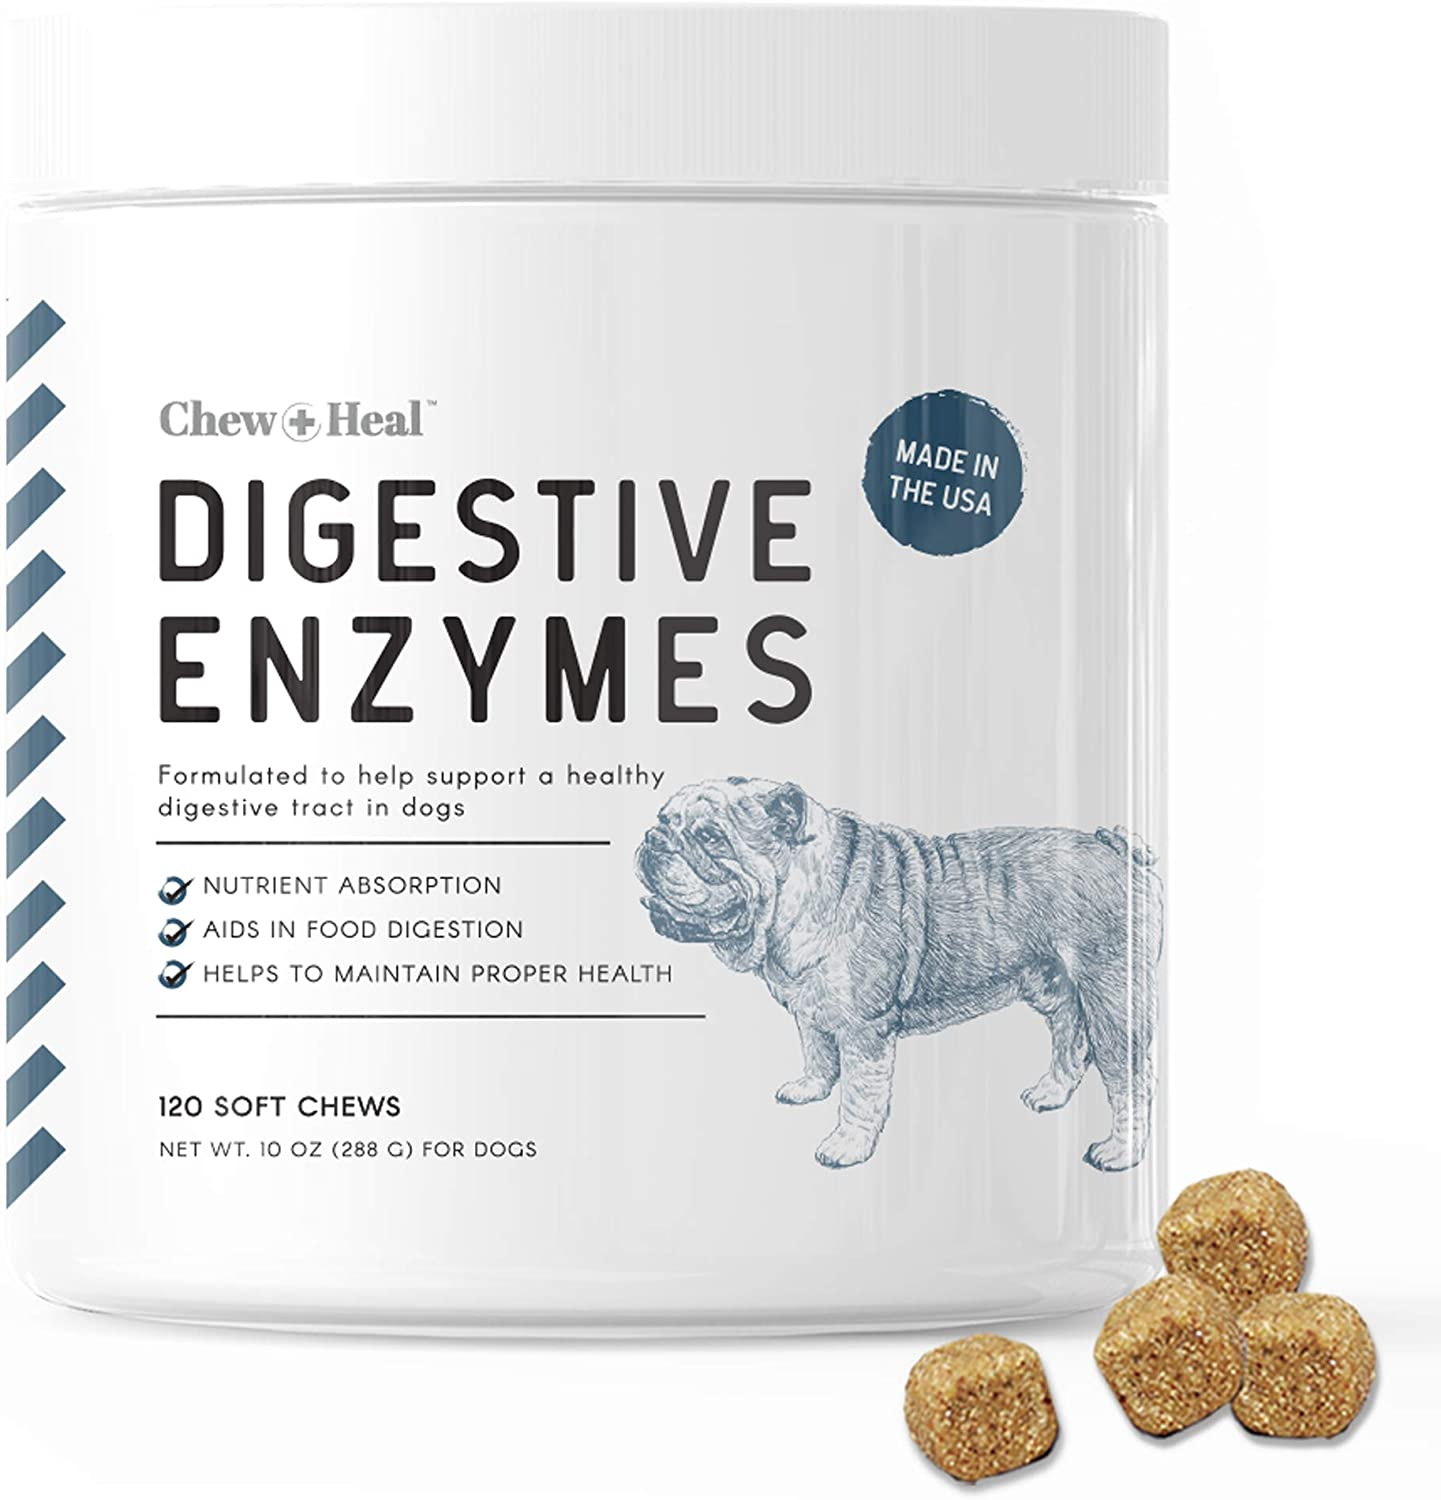 Chew + Heal Digestive Enzymes with Probiotics for Dogs - 120 Soft Chew Treats - Supports Healthy Digestive Tract, Helps Nutrient Absorption, Food Digestion, and Health Maintenance - Made in The USA